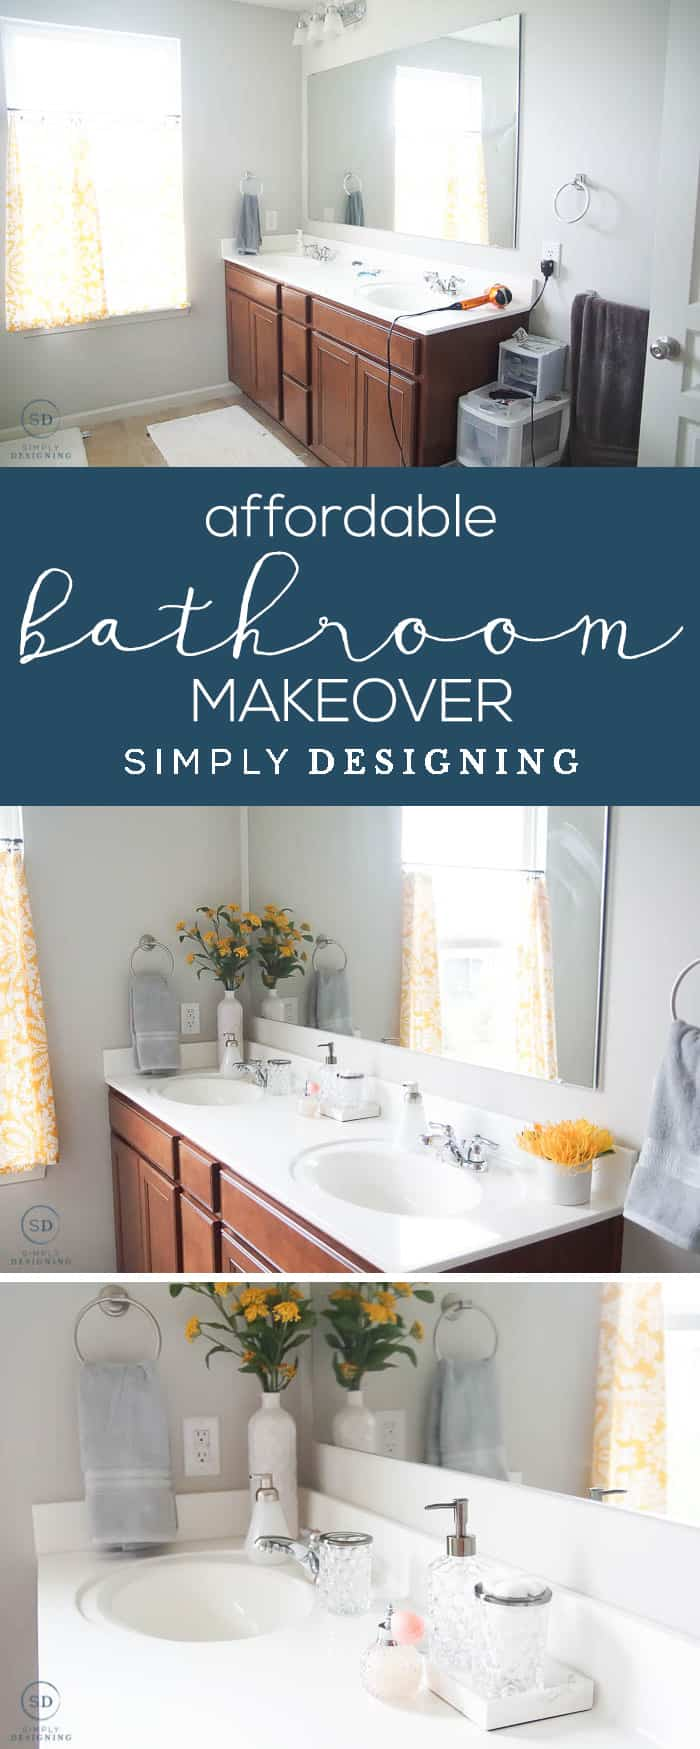 Affordable Master Bathroom Makeover - this budget-friendly bathroom makeover is so easy to do and looks amazing